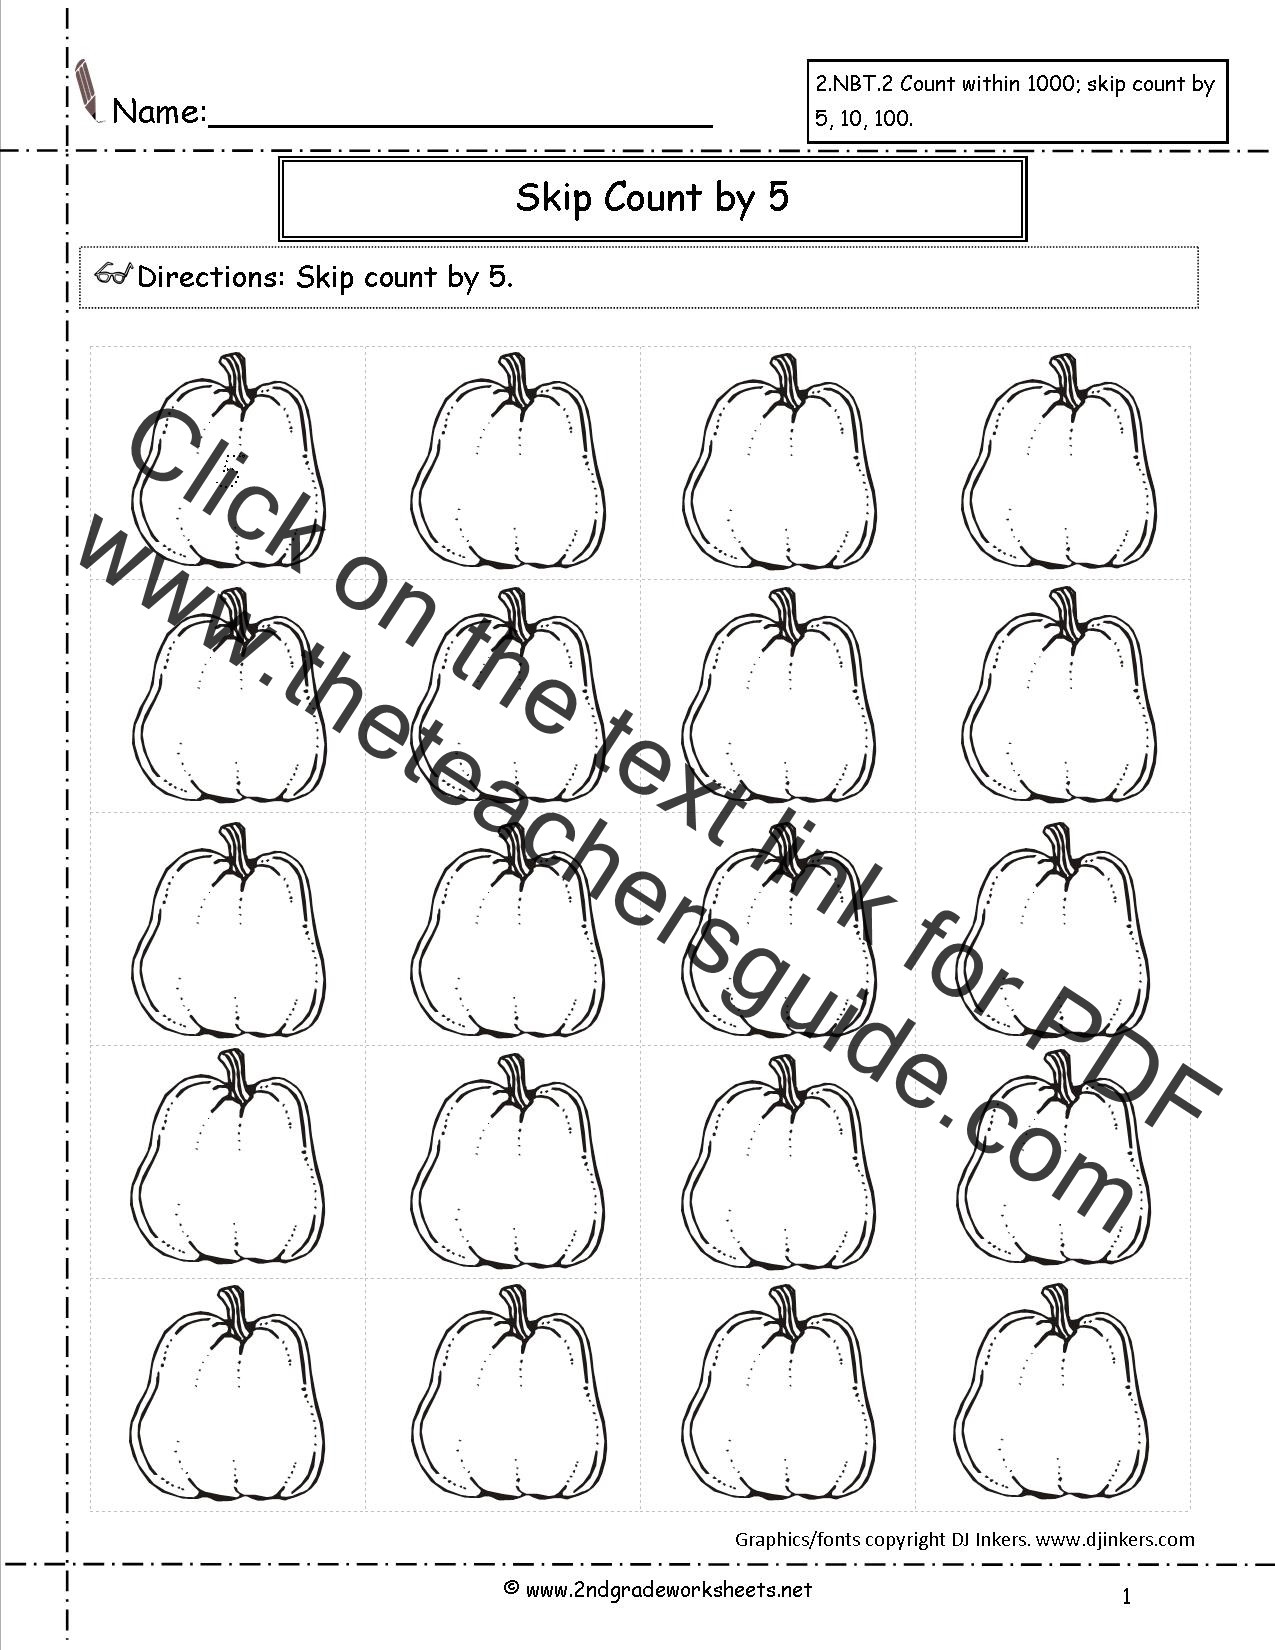 Free Kindergarten Halloween Worksheets Printable Monthly Archives July 2020 Count and Write Worksheet Free